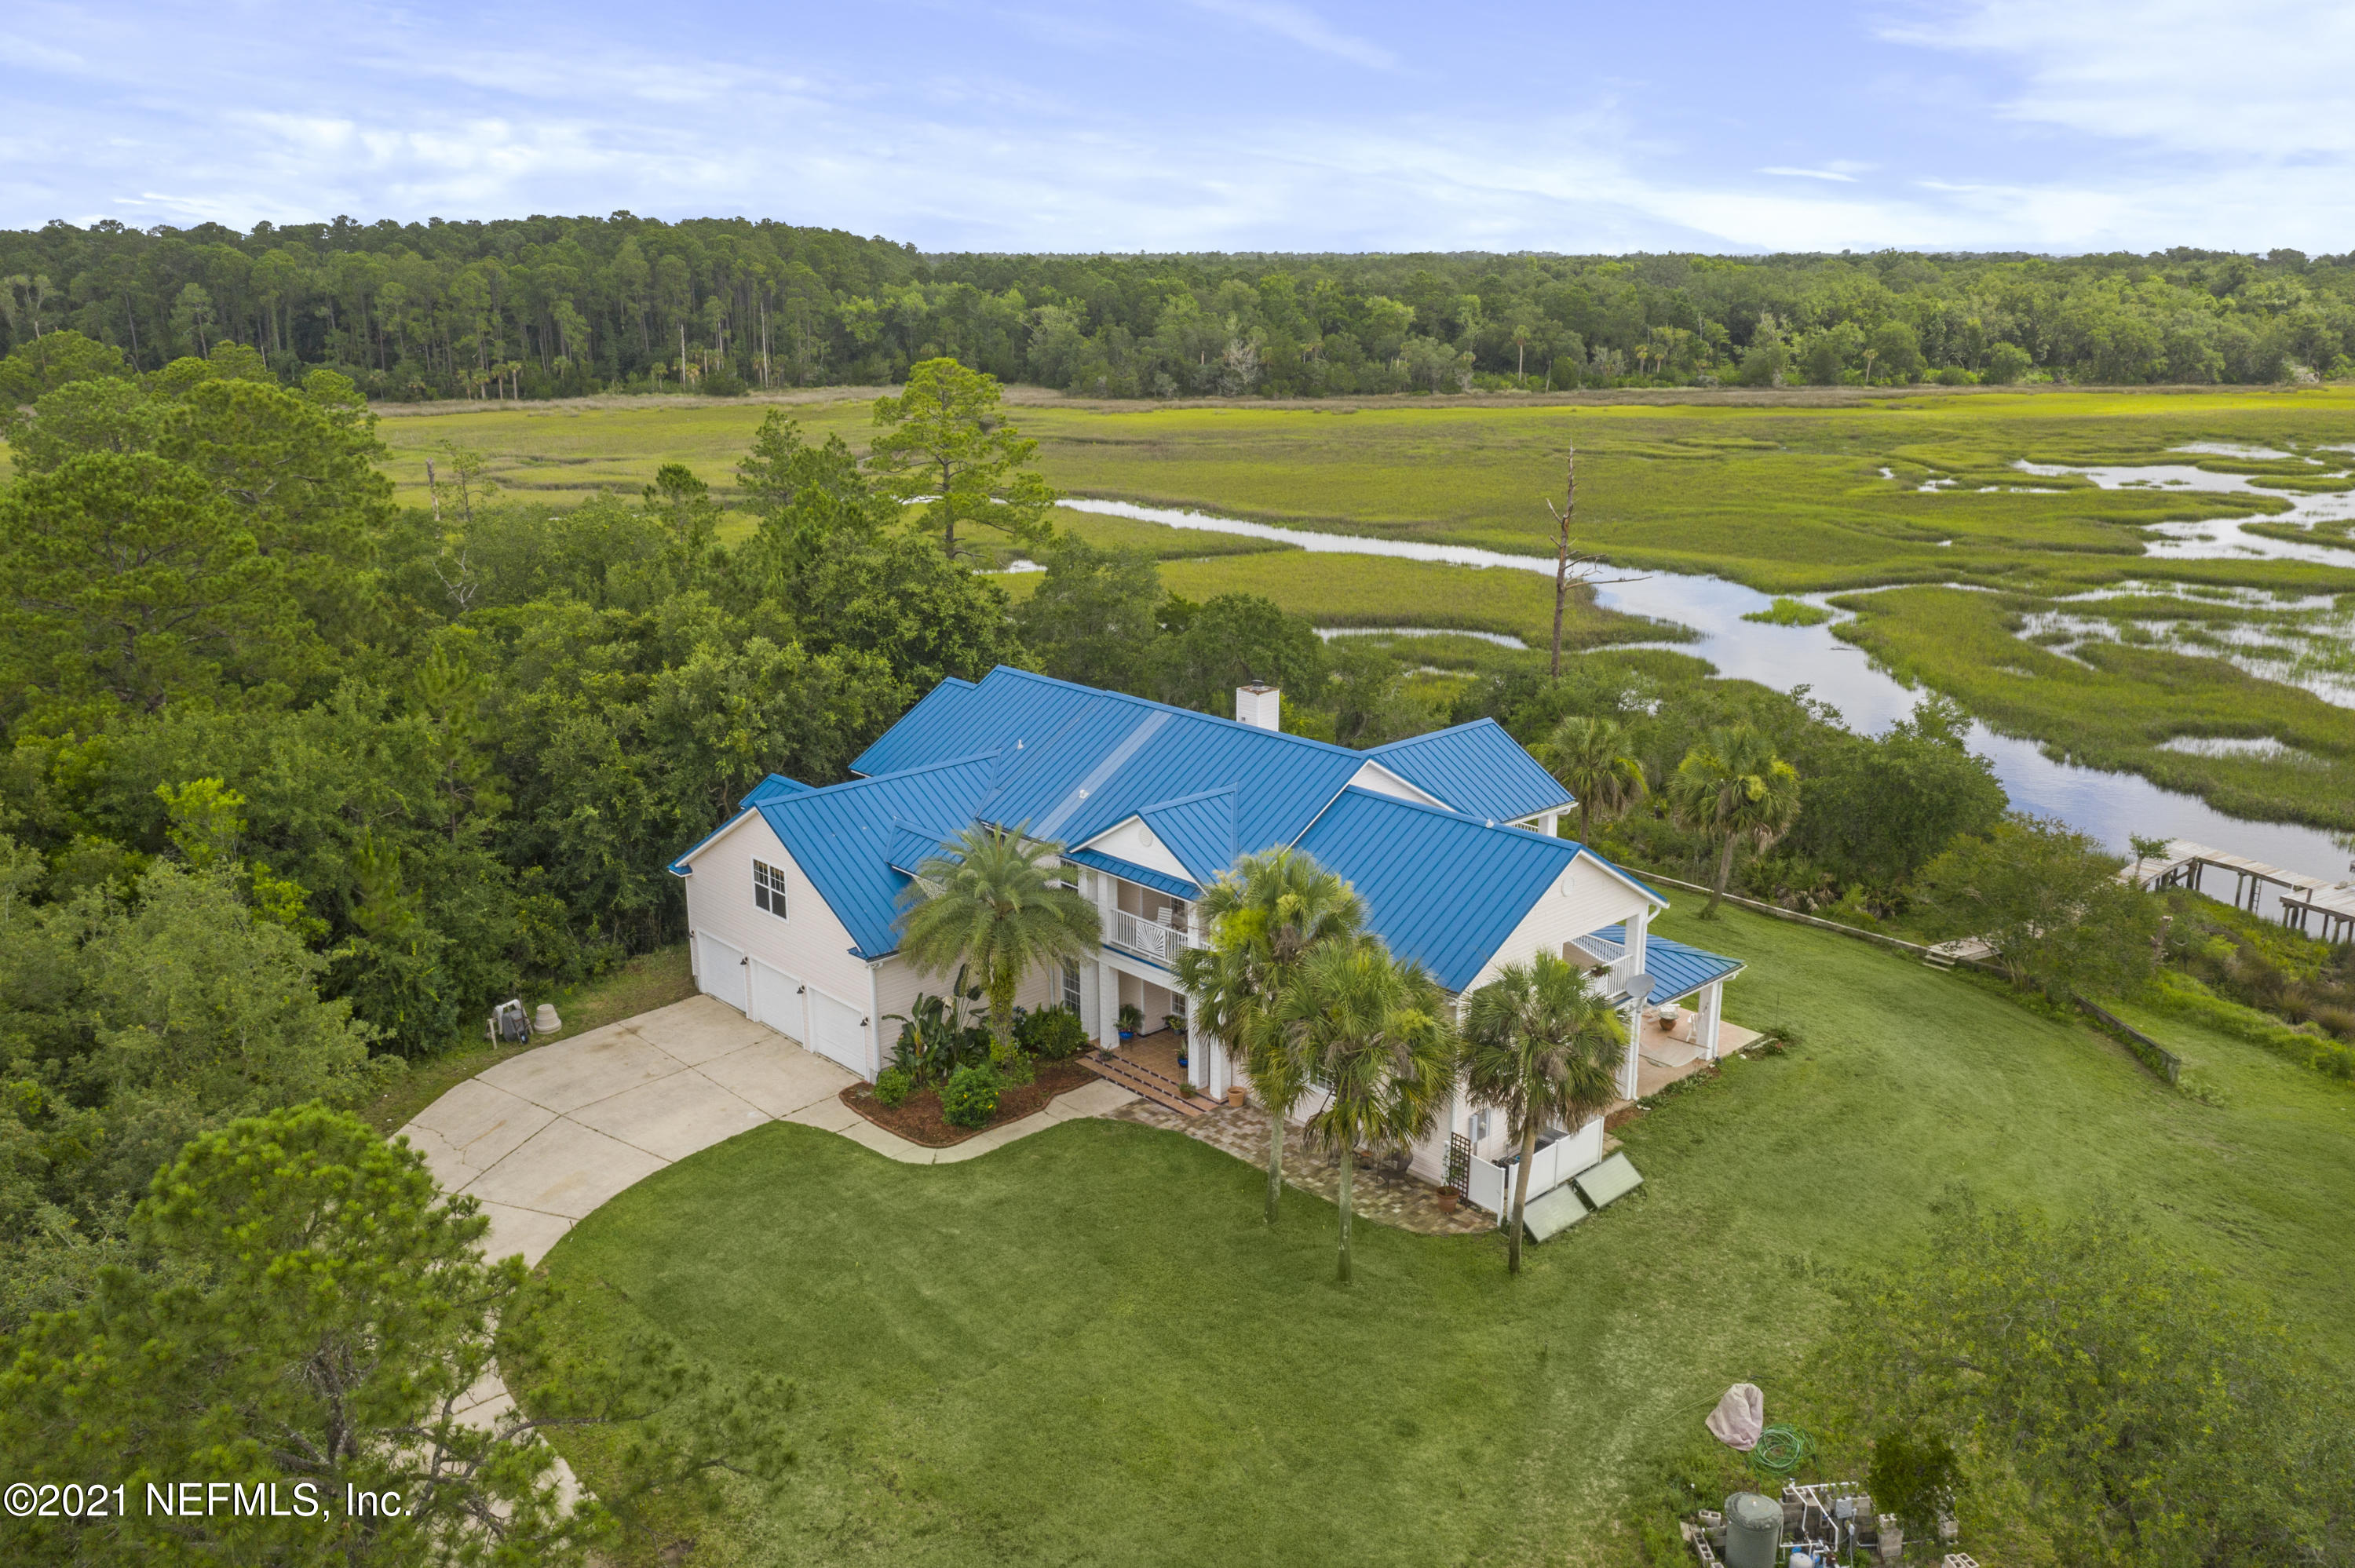 Spectacular home on over 8 acres of tidal water access close to Amelia Island & overlooking the St. Johns River Marshes Aquatic Preserve.15 min to Nassau River by boat.1,000 ft of tidal frontage, low tide 6 inches, high tide 6 feet on avg.Take the winding driveway through a canopy of oaks to find this private oasis. 95104 Mango Lane sits at an elevation of 16 feet, high and dry, NOT included in a flood zone. This 4,760 sq ft home boasts incredible views of wildlife, marsh and river from every single window. This home is perfect for everyone! The downstairs boasts an in-law suite complete with a kitchenette and living room space, as well as a private bedroom and en suite bath with ADA shower. A private office for those that require working from home or opt to home school. The family room is is a two story stunner! The natural sunlight pours in from every window making the space feel light, airy and open. The kitchen is updated with stainless steel appliances, a wine fridge, double oven and beautiful granite countertops. Head upstairs and find your guest bedrooms as well as your master suite. The master suite is on the opposite side of the home from the guest bedrooms. The master suite has an en suite bath with his & hers sinks, separate shower, garden tub and private commode. Enjoy a cup of coffee or a glass of wine on your balcony that overlooks the marsh. The guest bedrooms share a guest bath with two sinks and shower/tub combo, plus ample storage! Upstairs you will also find a huge bonus room (converted in 2019) perfect for games like ping pong & pool, plus great entertainment space for professional sports. Prefer to spend time outdoors, Mango Lane is your perfect home. With over 1900 ft of marsh views and tidal front you can fish, boat, paddle board, bird watch and so much more. Light up that fire pit and roast s'mores for the littles ones while you enjoy a cool libation. This property features enough land to build additional homes, boat houses, etc. as well as h